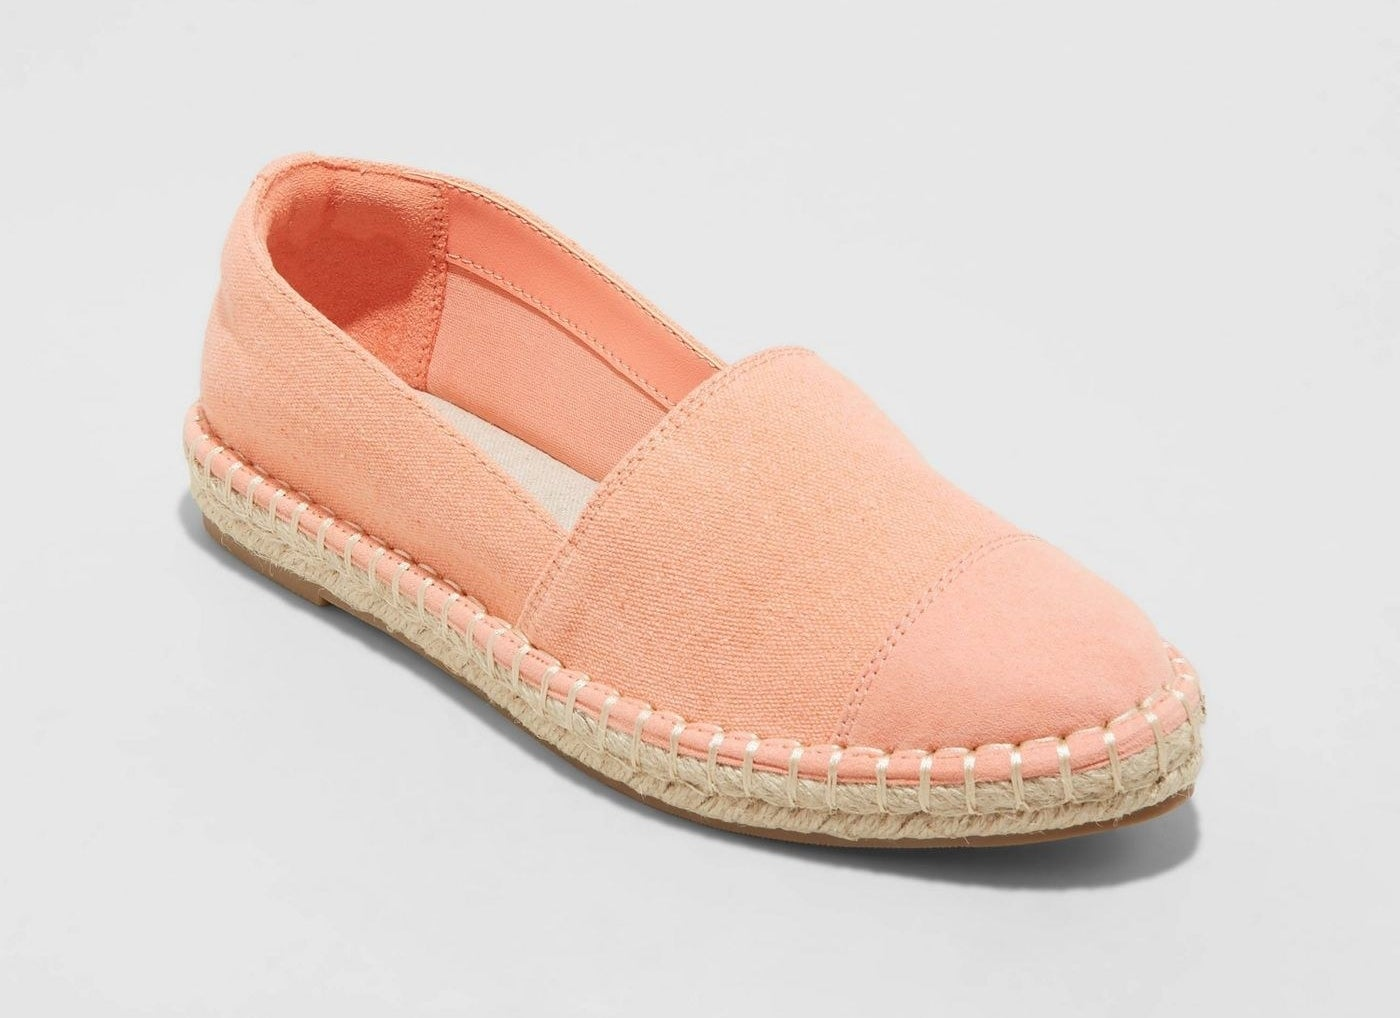 Espadrille shoes in soft pink